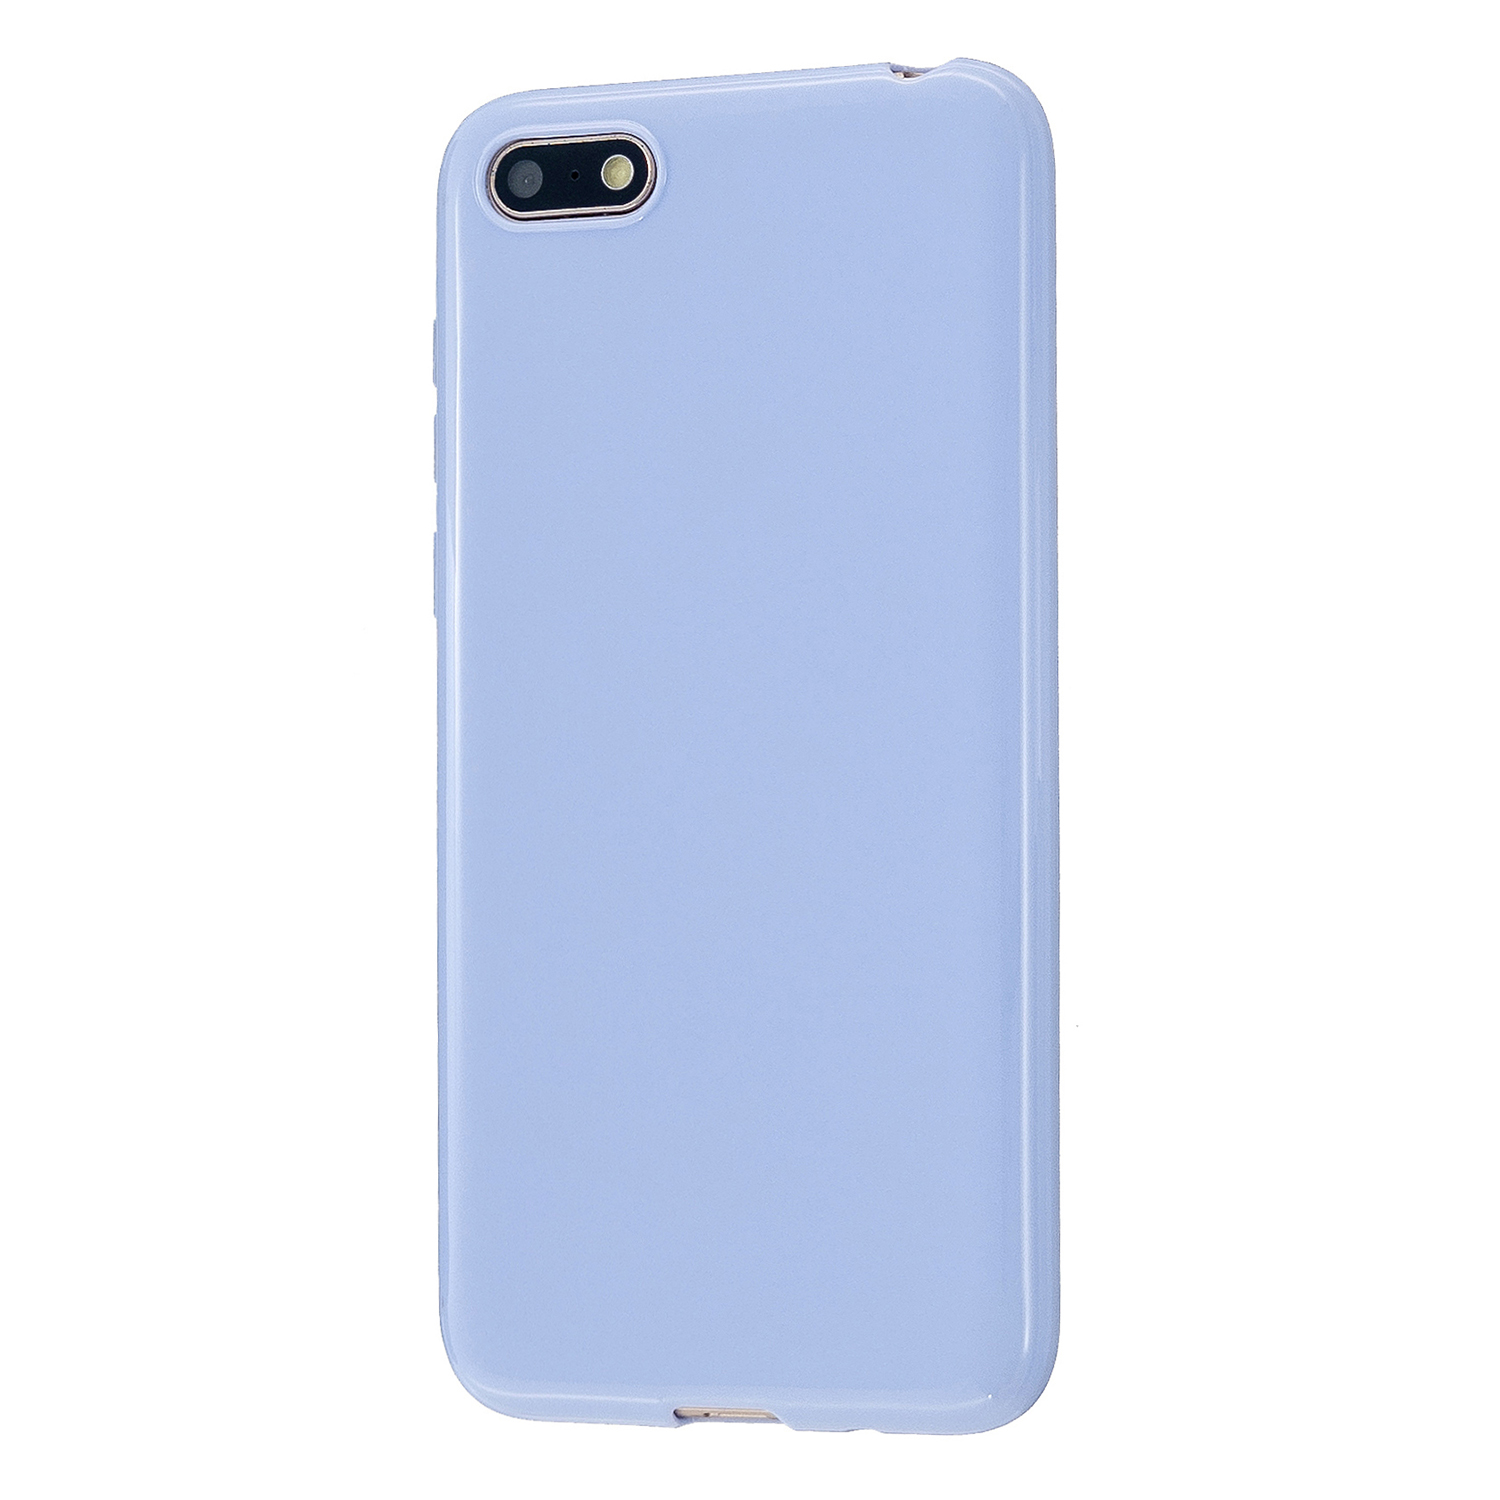 For HUAWEI Y5 2018/2019 TPU Phone Case Simple Profile Delicate Finish Cellphone Cover Full Body Protection Taro purple